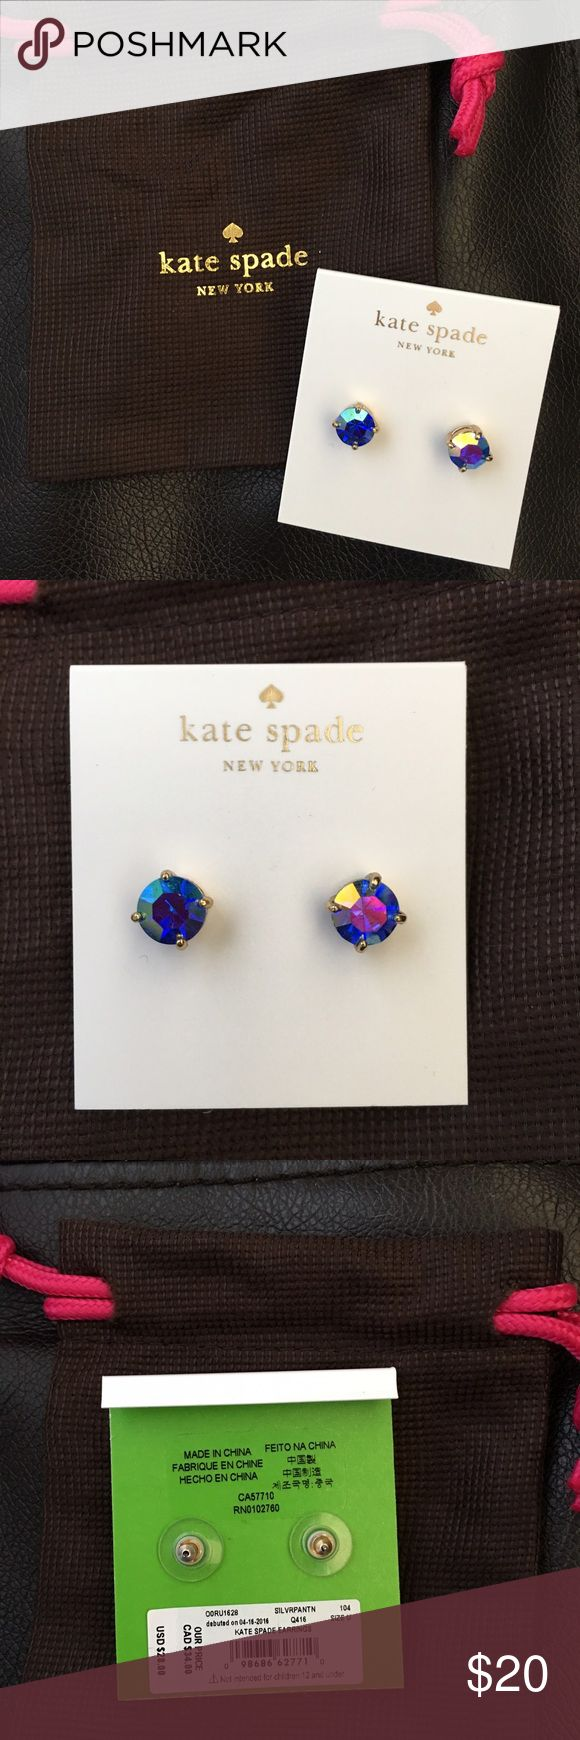 🎉 ONE DAY SALE Kate Spade Earrings Super Cute Kate Spade Earrings kate spade Jewelry Earrings